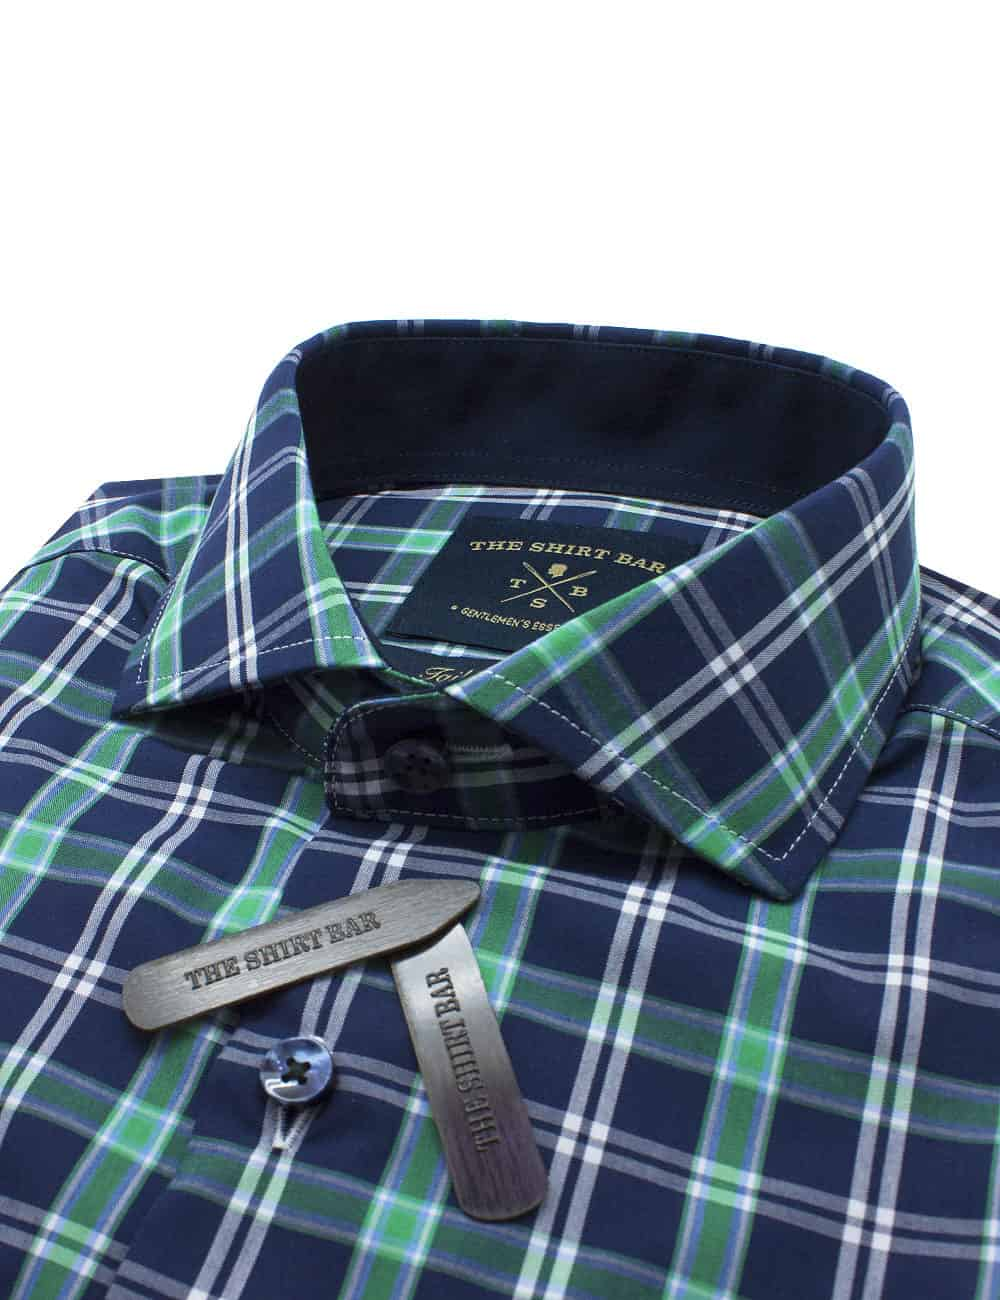 Tailored Fit Navy & Green Checks Eco-ol Bamboo Blend Wrinkle Free Long Sleeve Single Cuff Shirt TF1C7.7